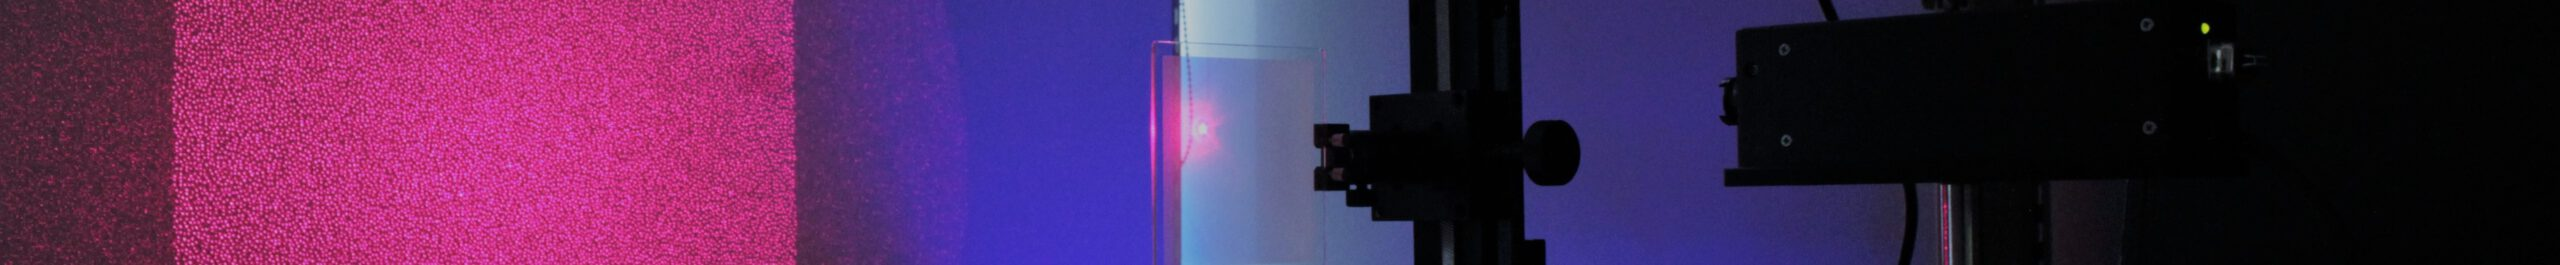 660nm (red) laser projecting through in-house designed and optimized Diffractive Optical Elements creating a Random Pattern Projection